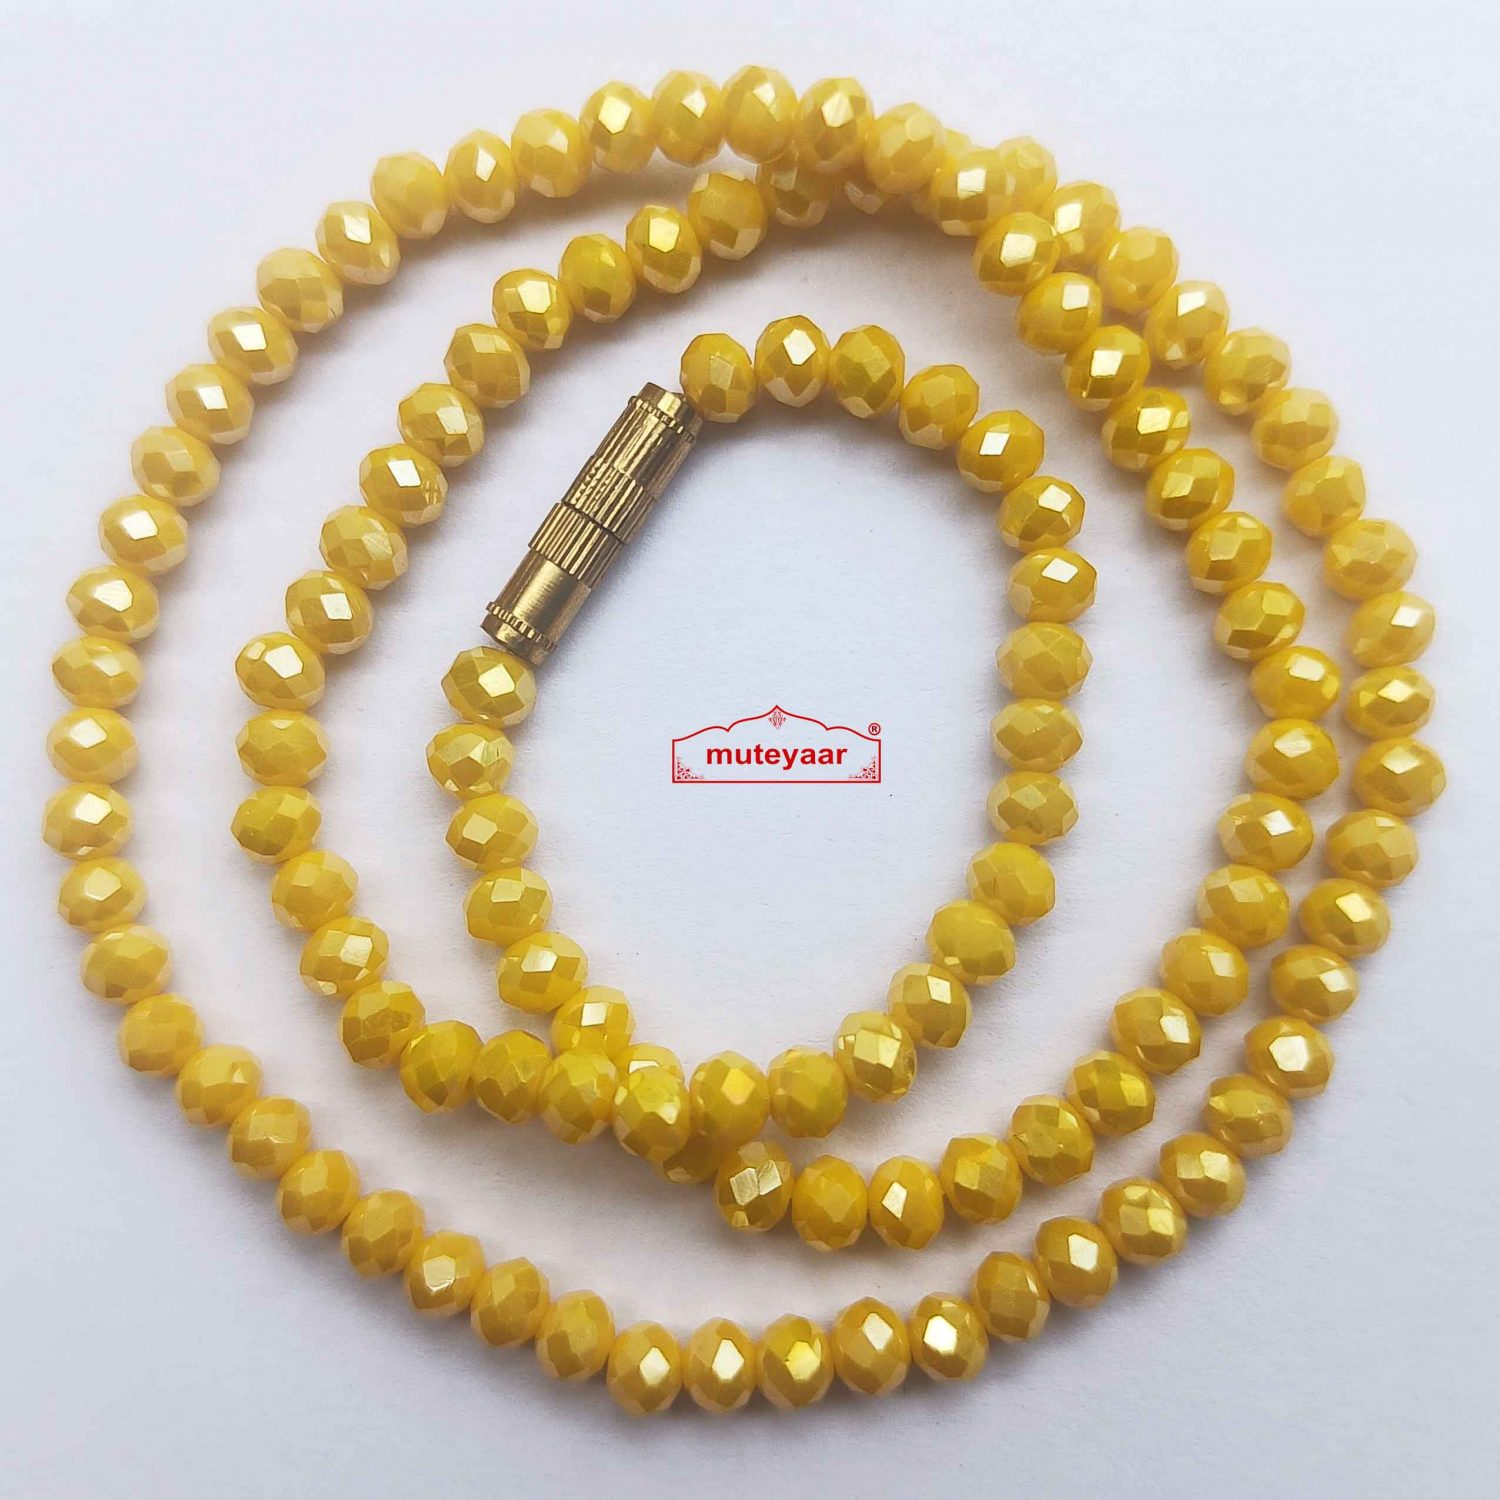 Crystal Chain Necklace 16 Inch Size - Different Colours Available 2